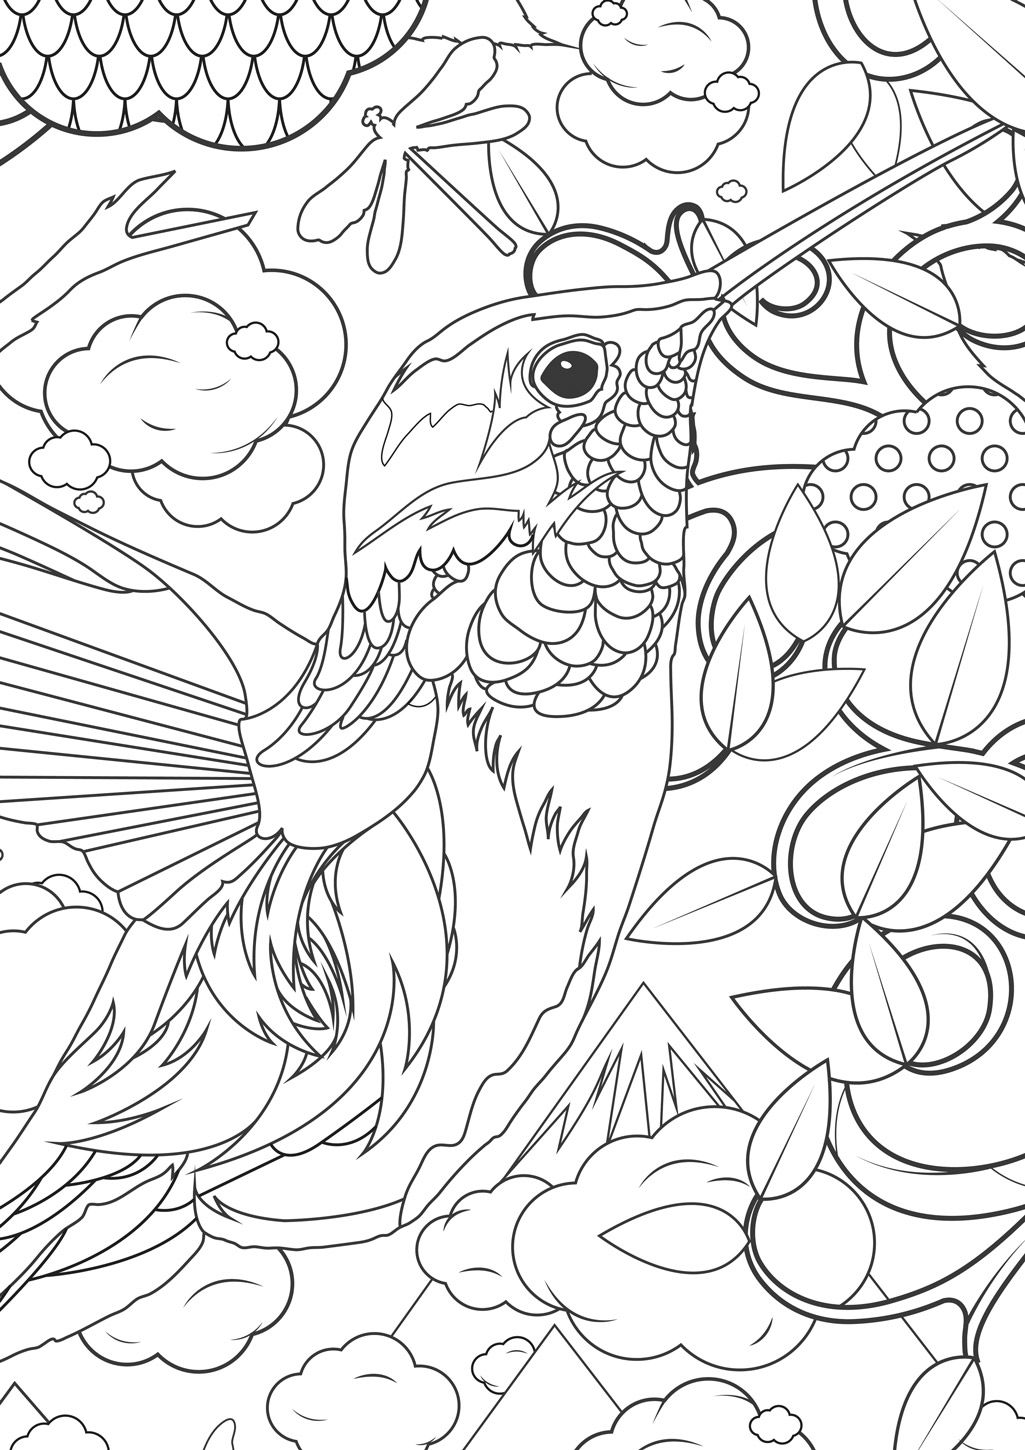 free printable coloring pages for older kids hard coloring pages for older kids at getcoloringscom kids for coloring printable pages free older